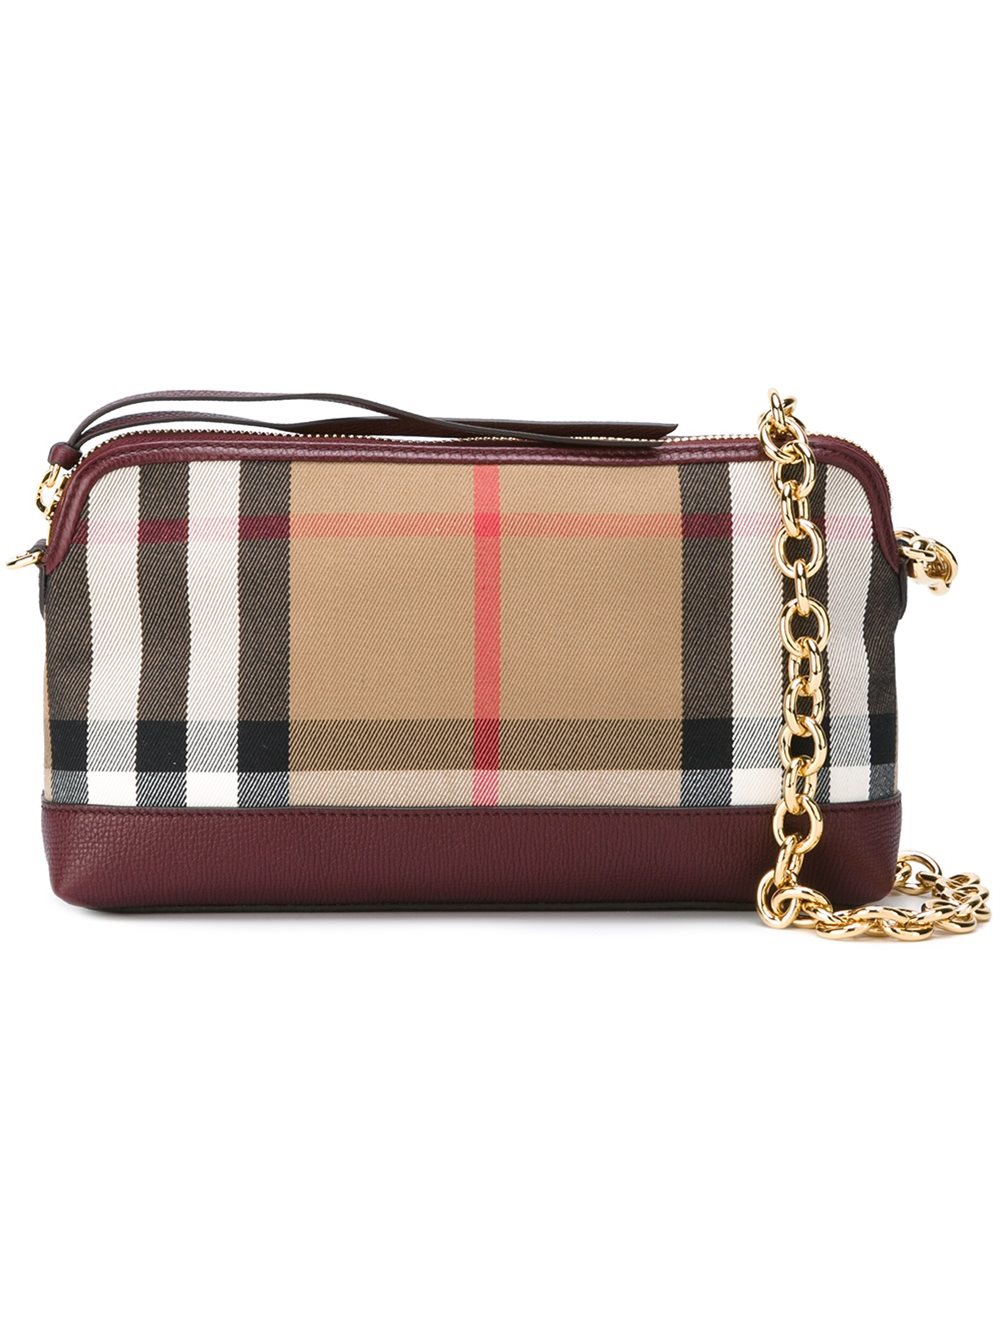 burberry checked shoulder bag in lyst